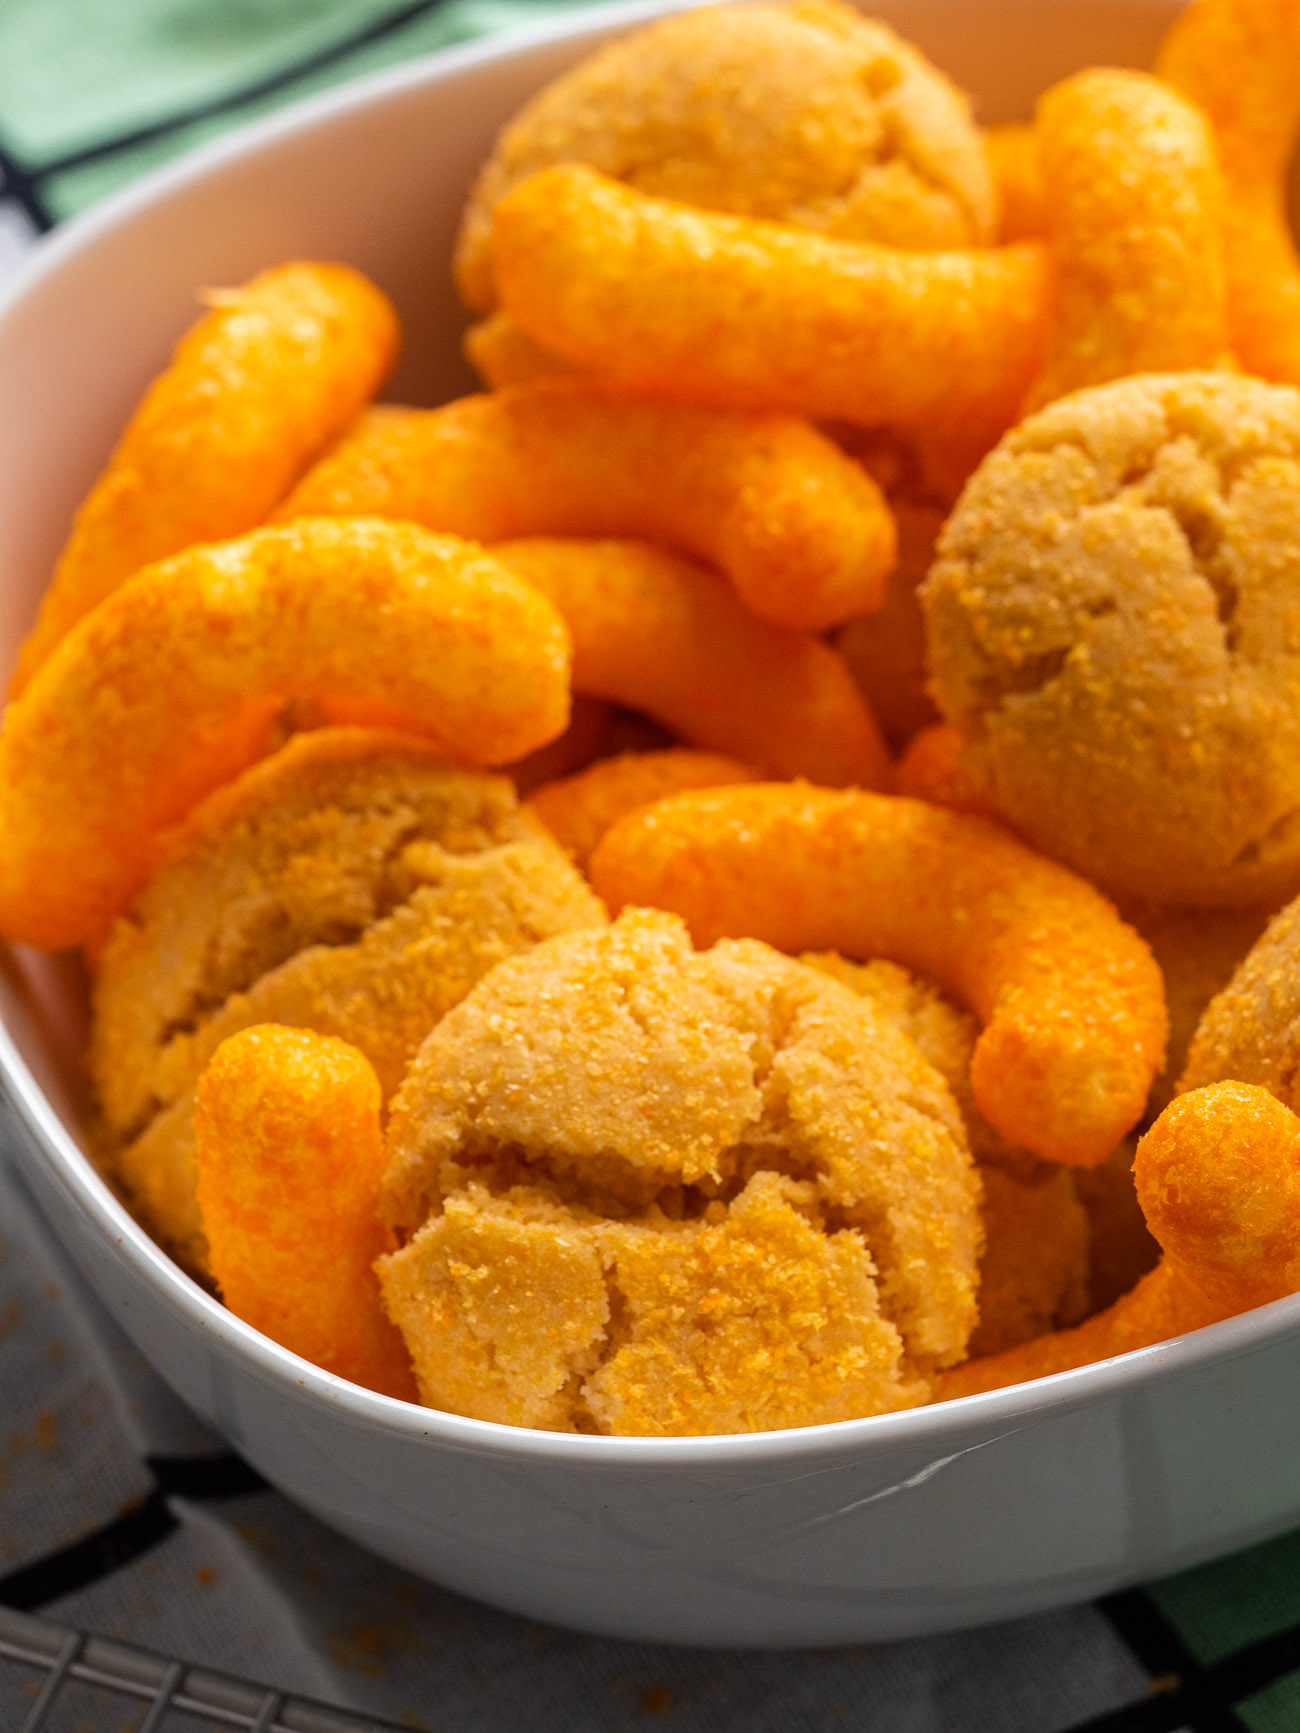 Cheetos cookies in a bowl with cheetos